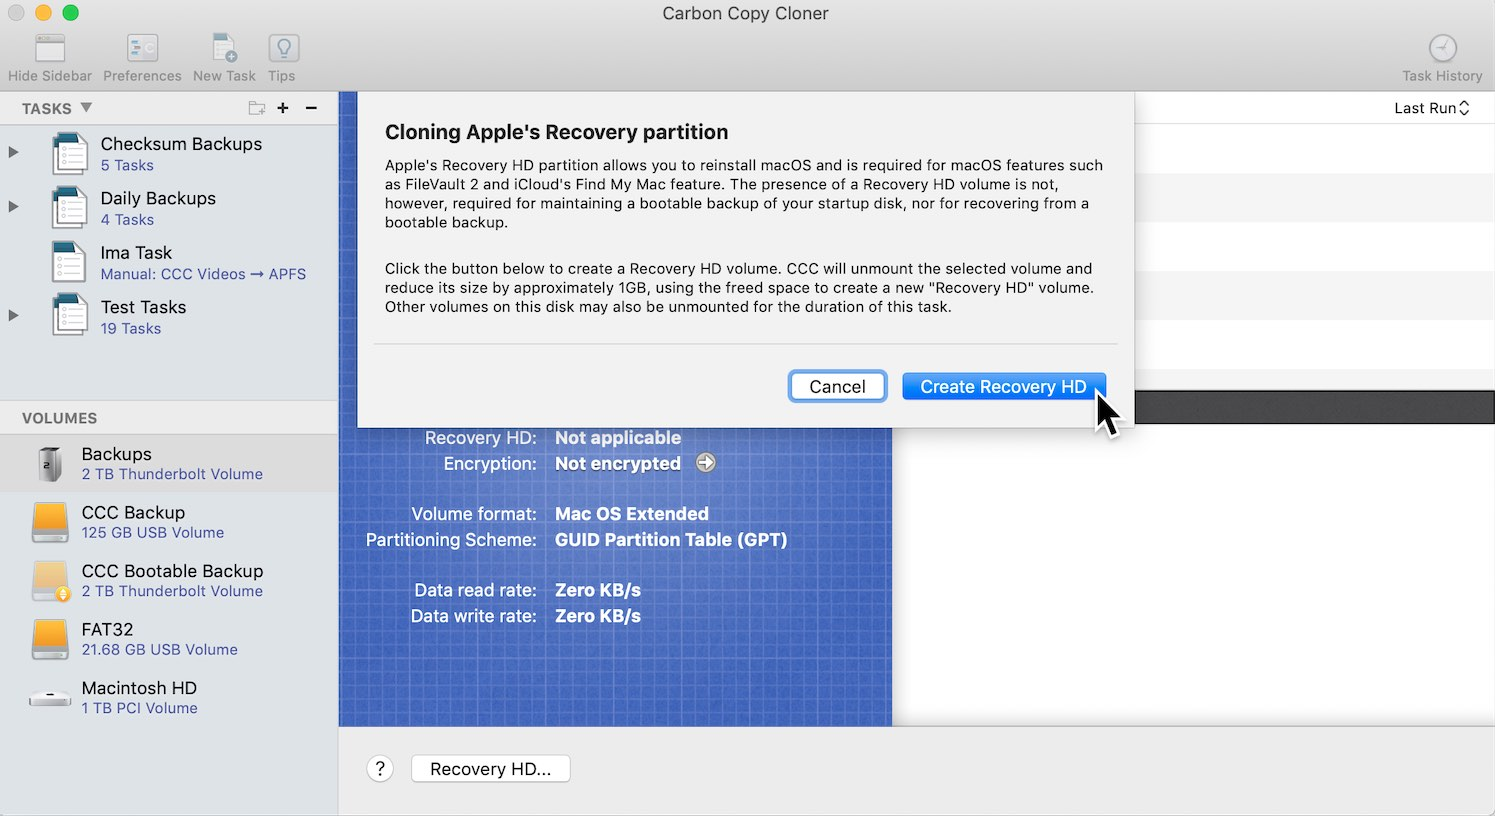 Cloning Apple's Recovery HD partition | Carbon Copy Cloner